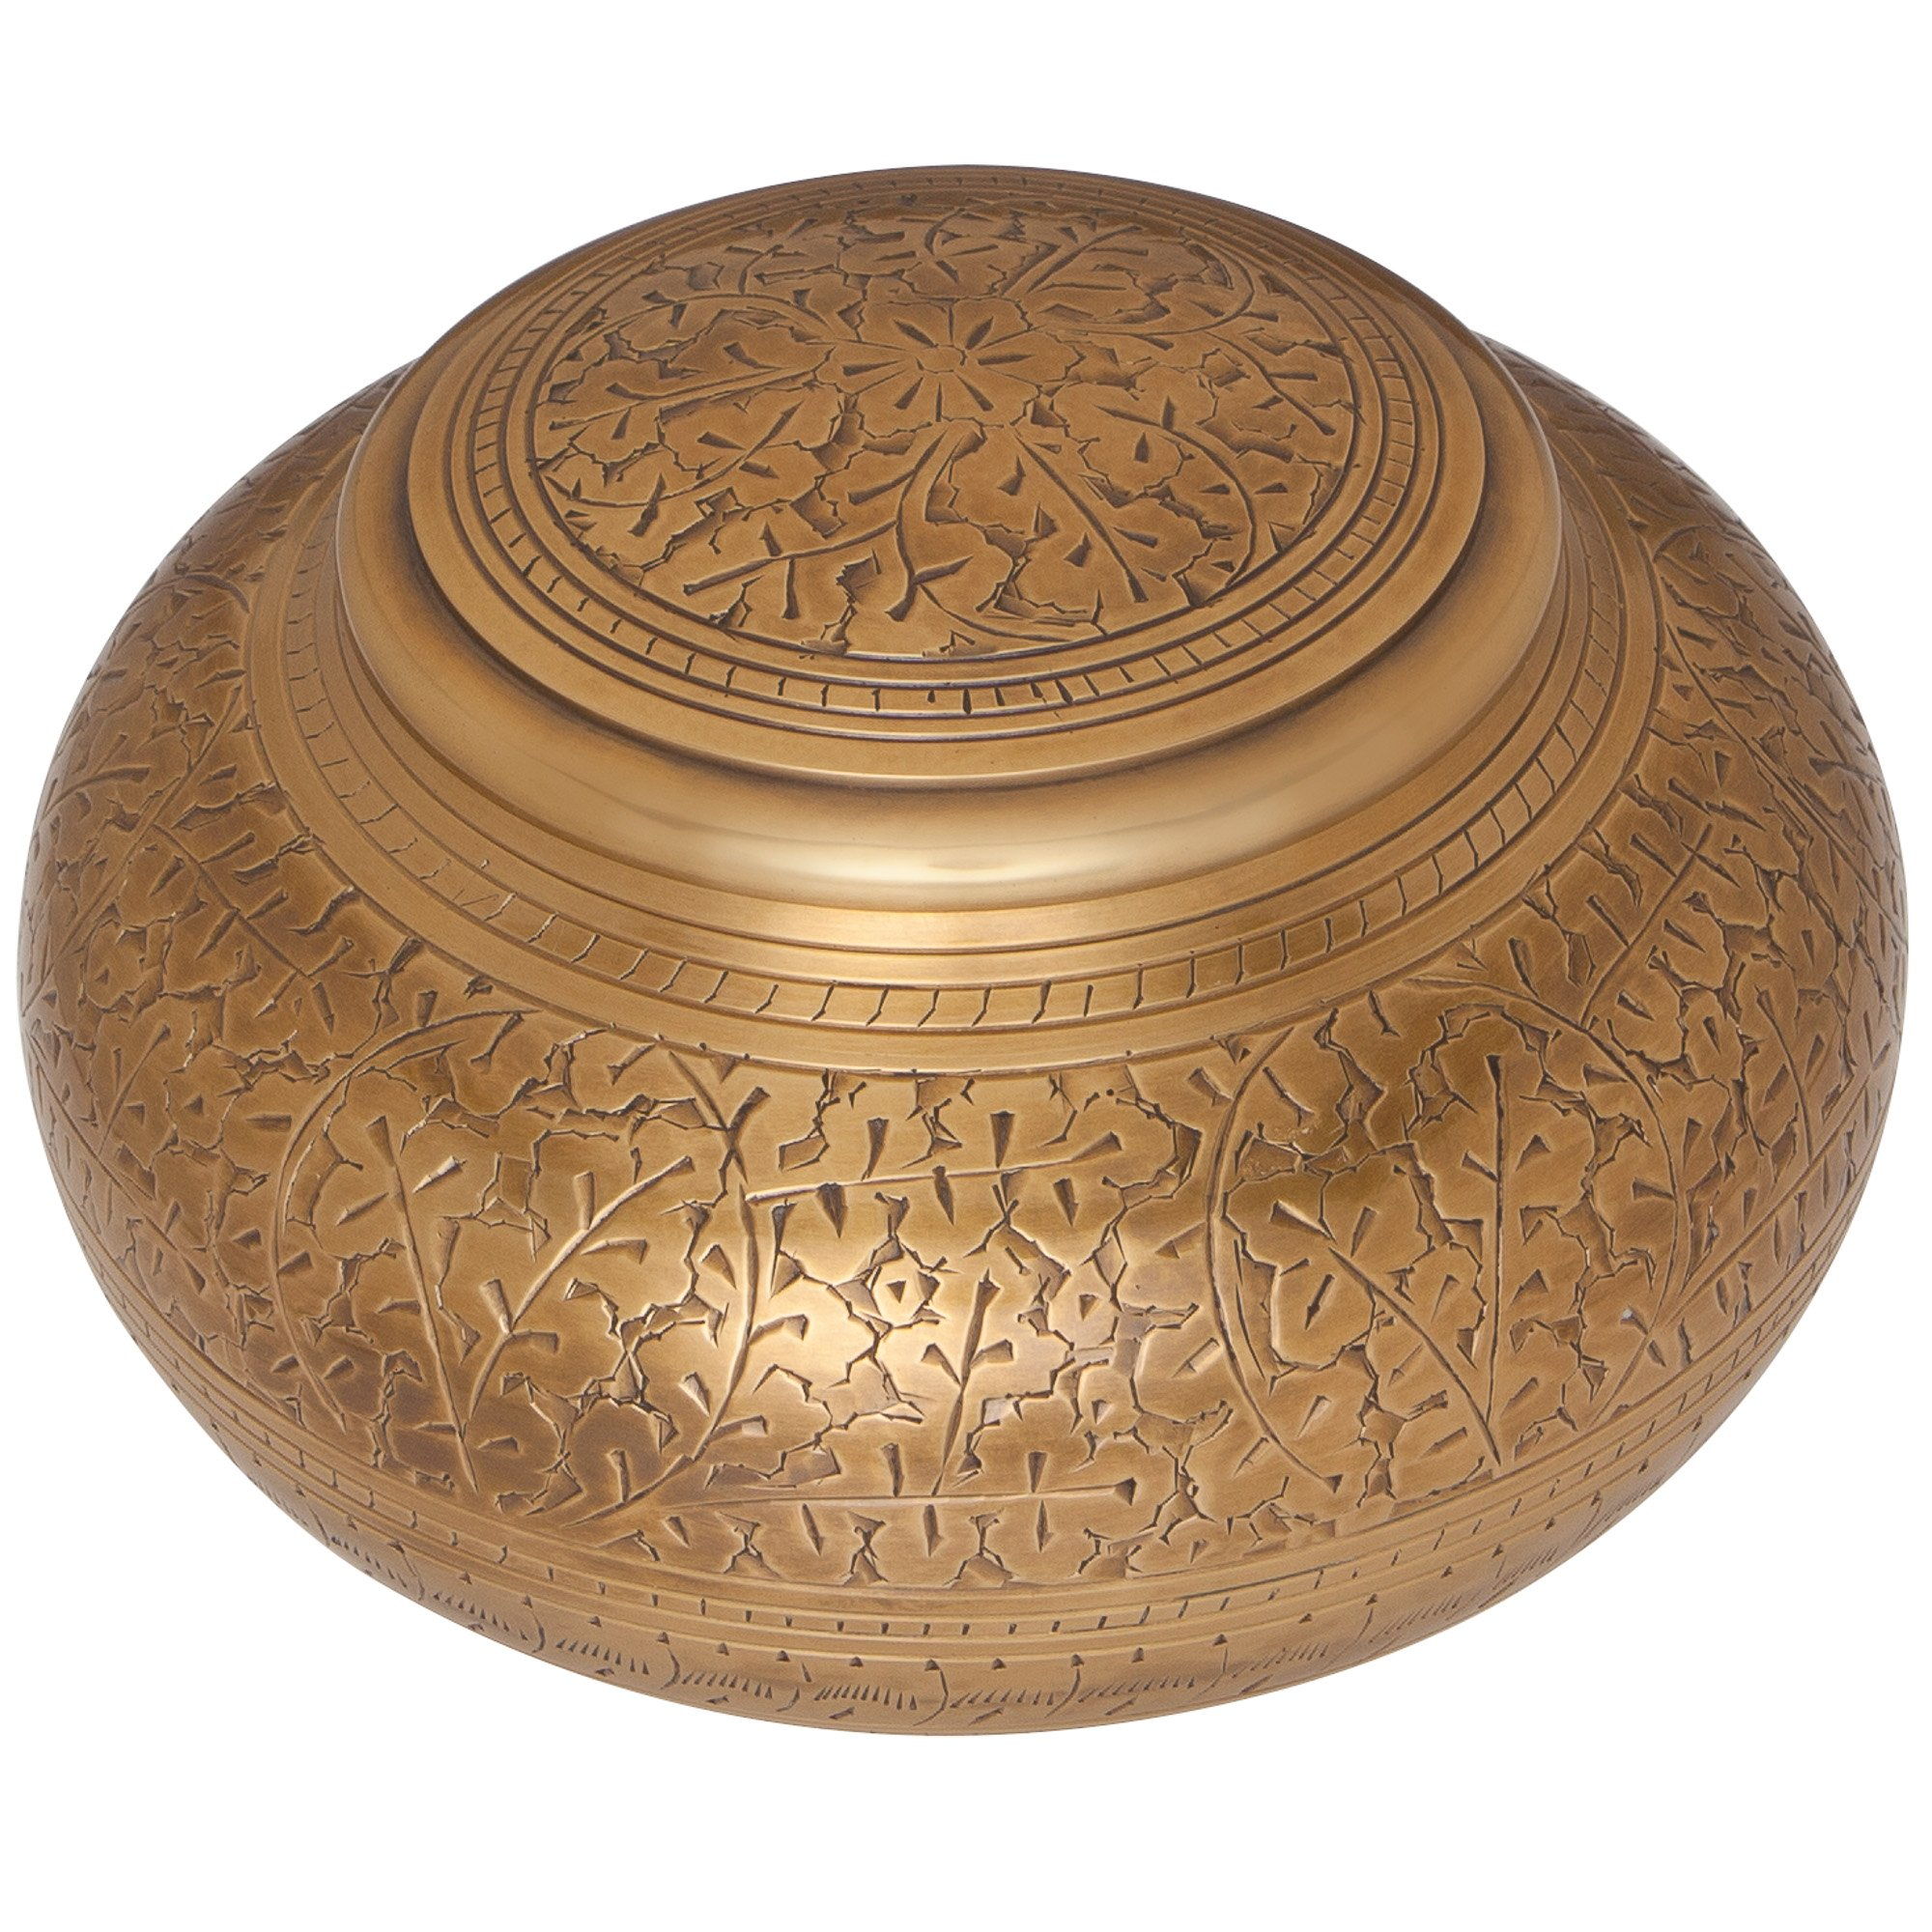 Bronze Antique Brass Funeral Urn by Liliane Memorials - Cremation Urn for Human Ashes - Hand Made in Brass - Suitable for Cemetery Burial or Niche - Large Size fits remains of Adults up to 110 lbs by Liliane Memorials (Image #3)